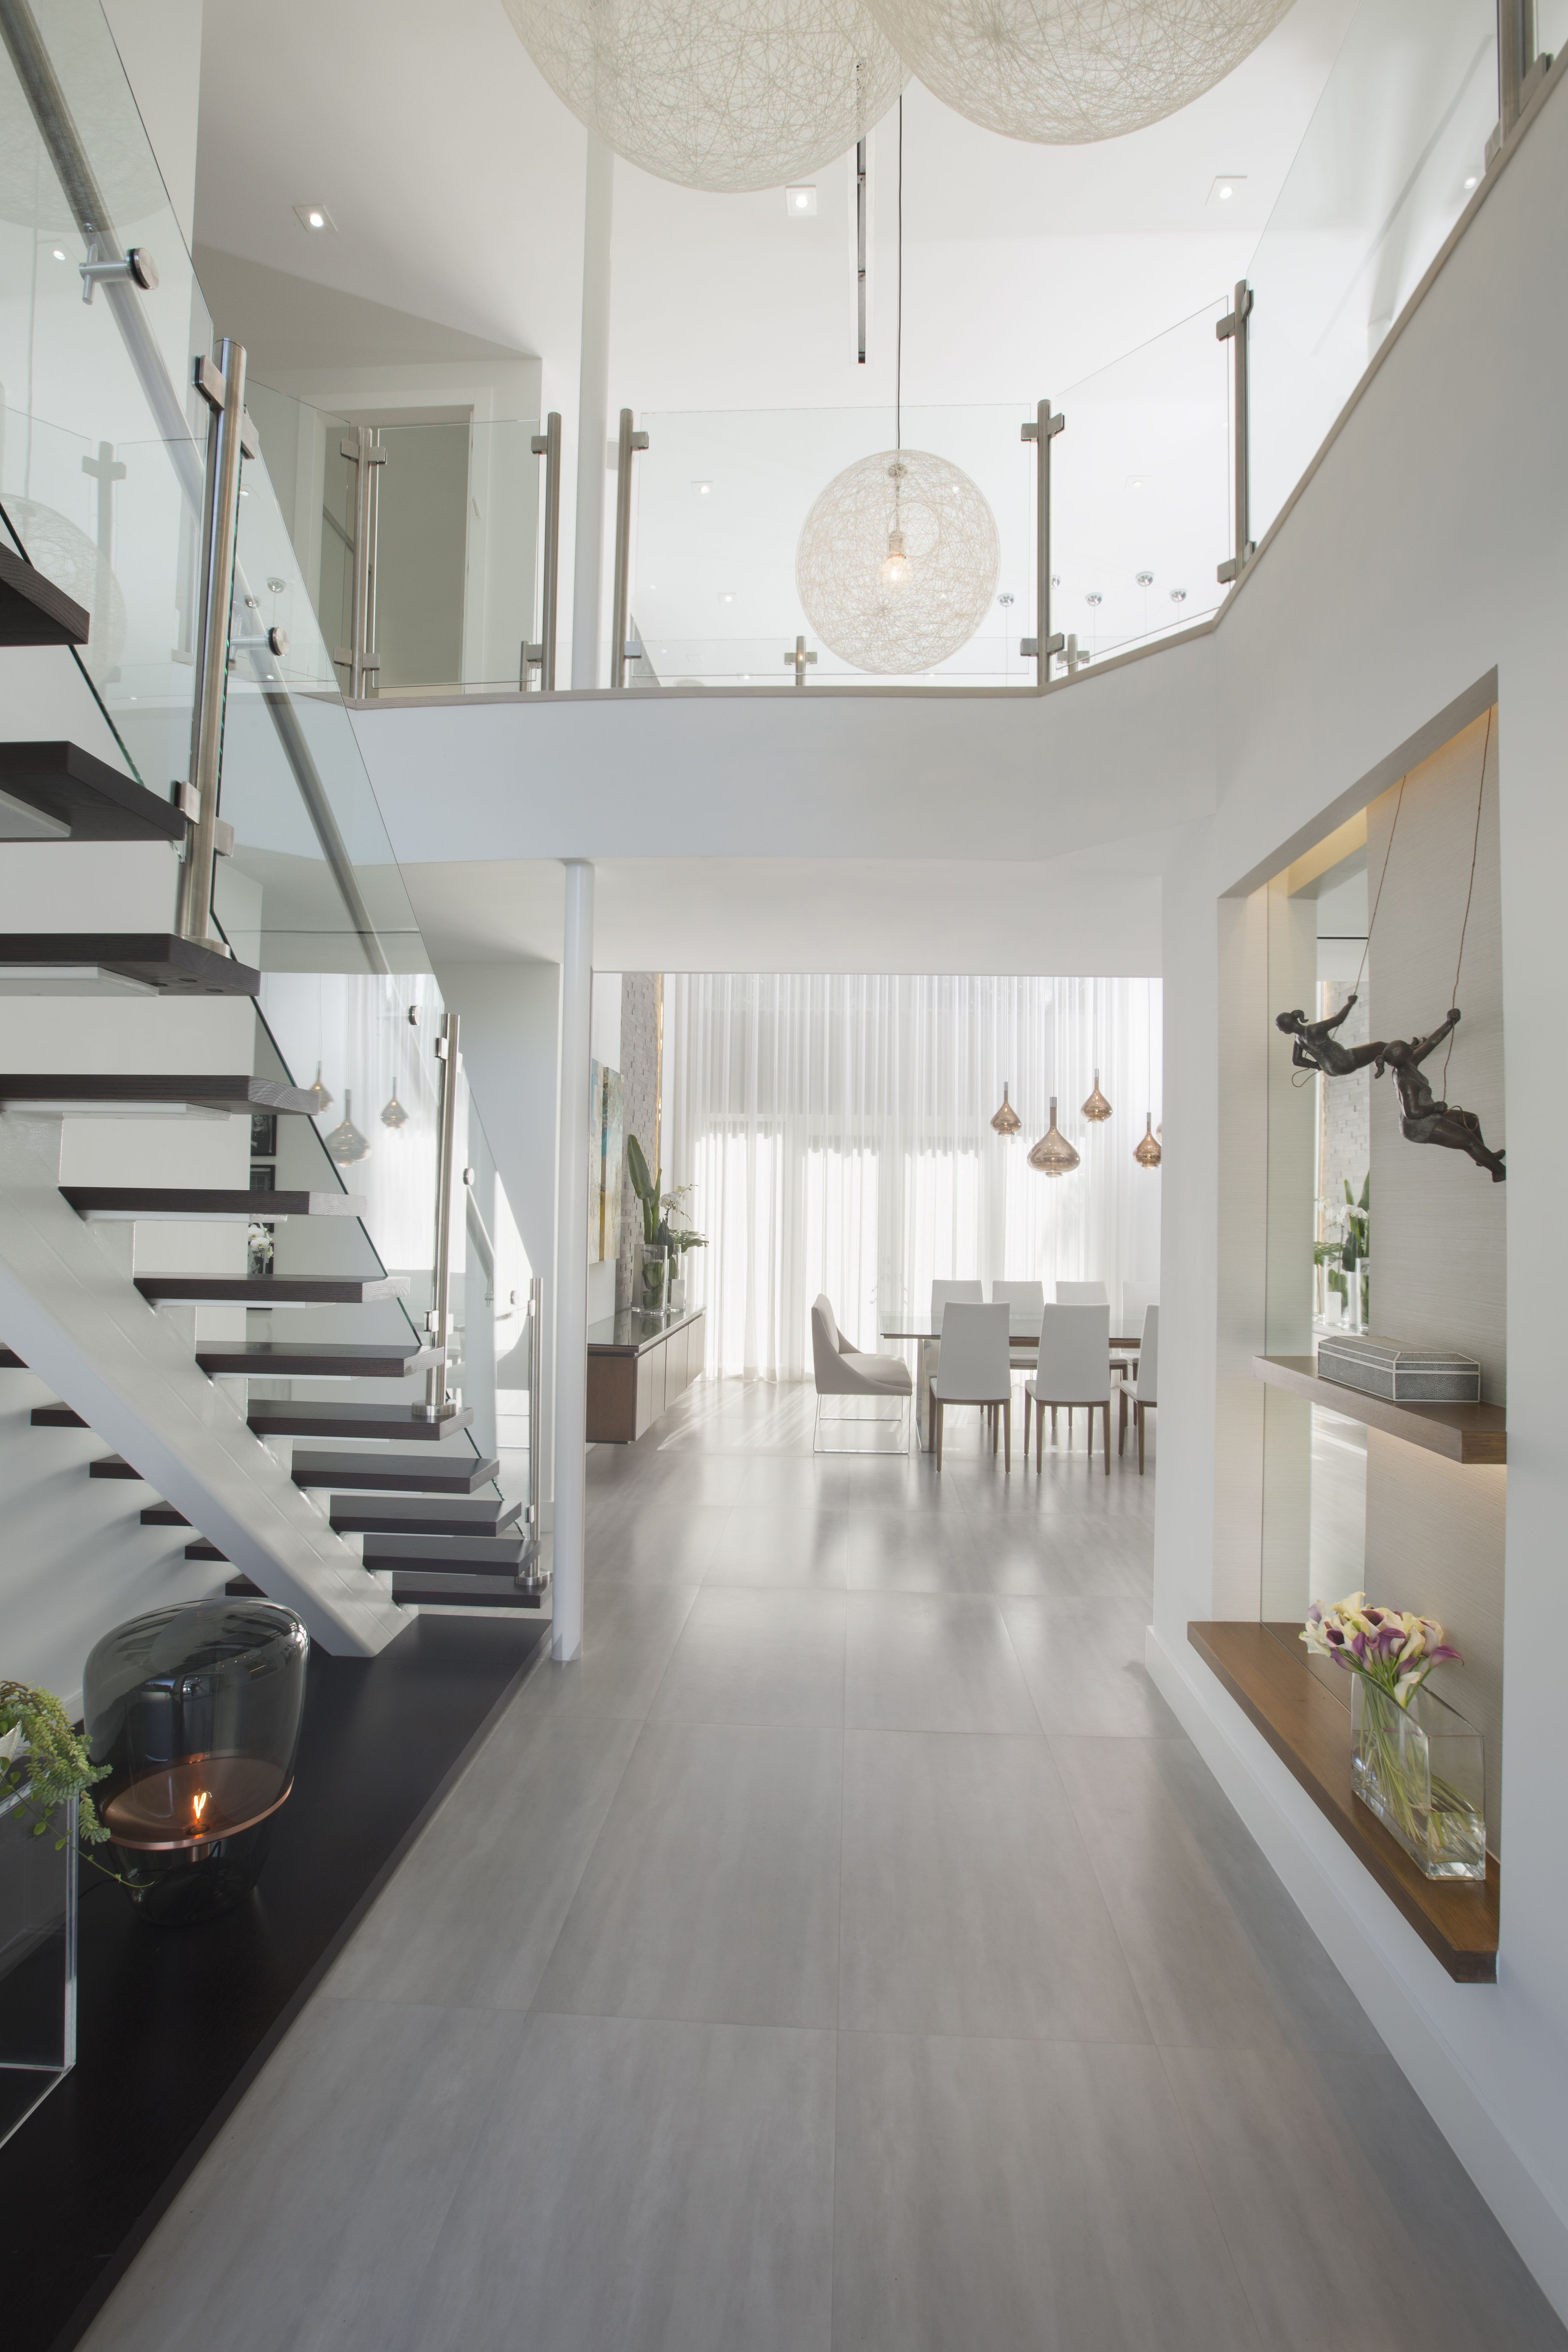 Modern Eclectic Home | Residential interior design, Design projects ...